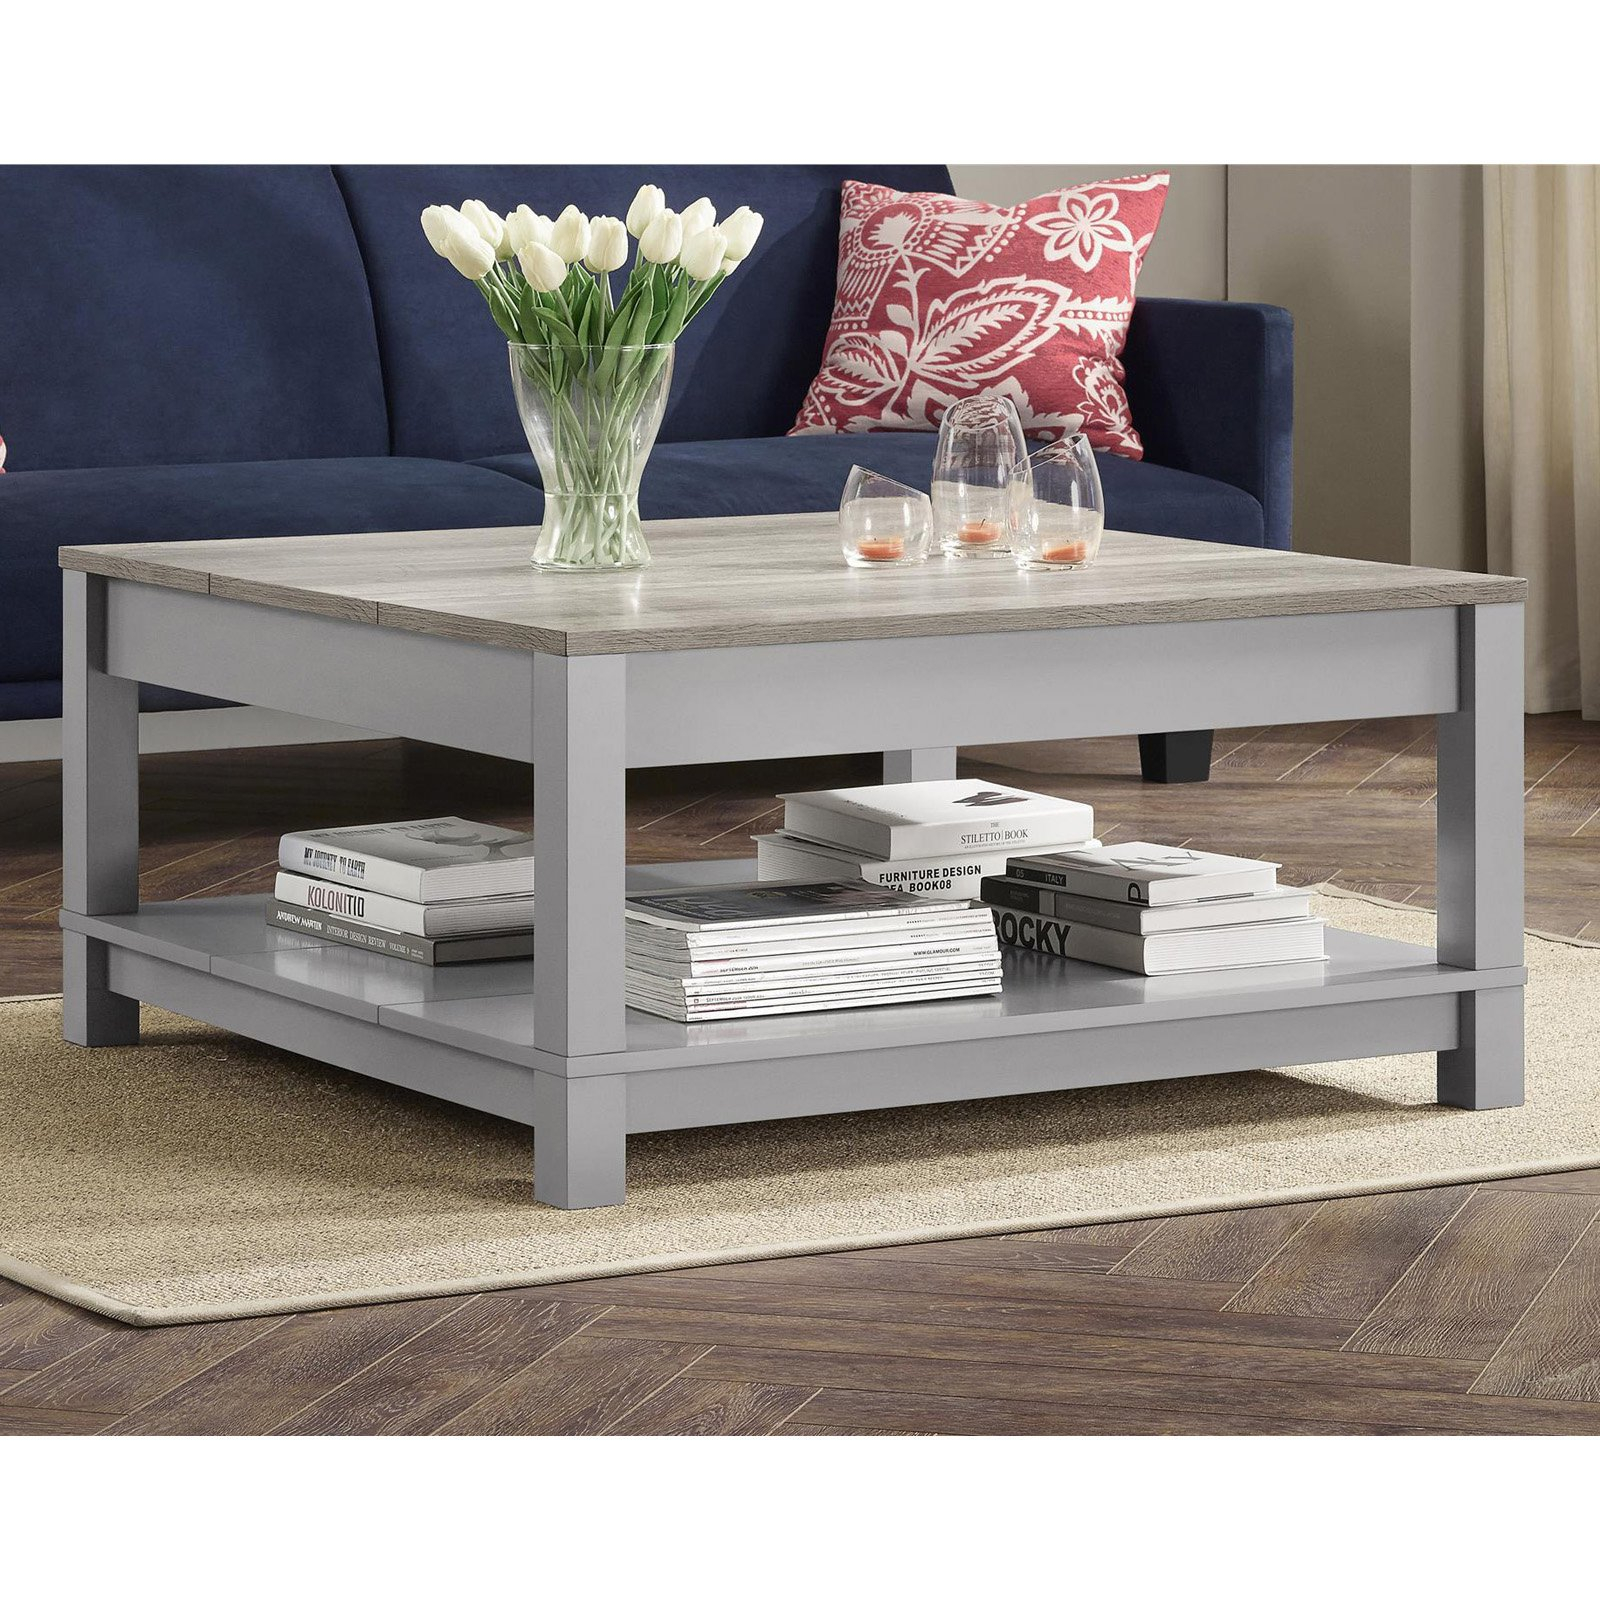 Better Homes And Gardens Langley Bay Coffee Table Multiple Colors throughout sizing 1600 X 1600